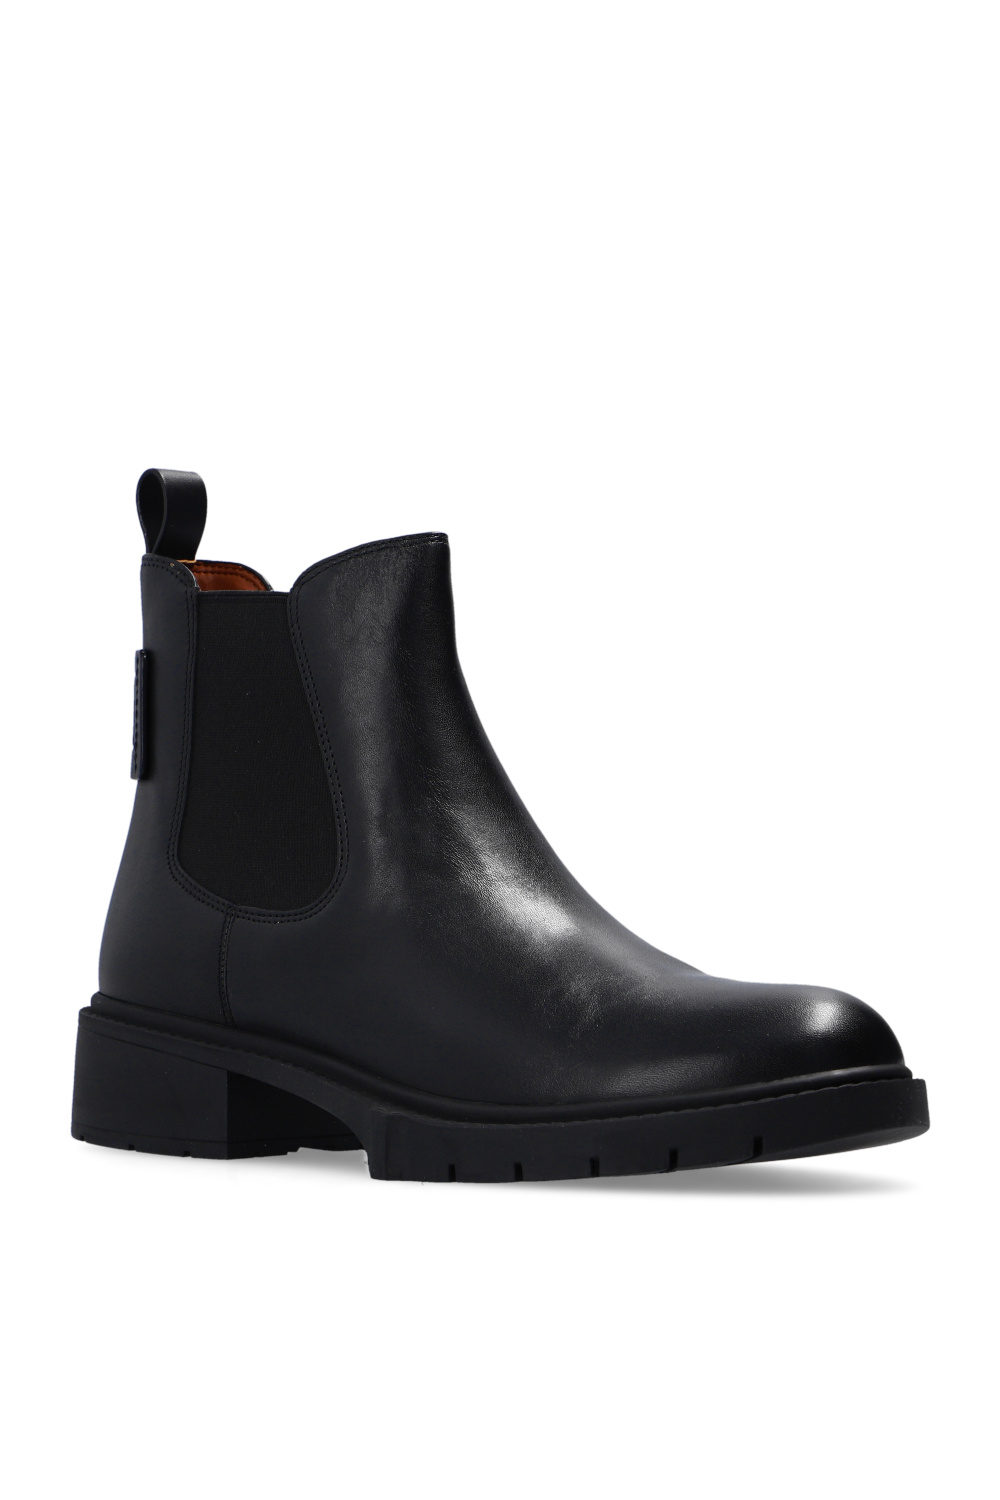 Coach 'Lyden' Chelsea boots